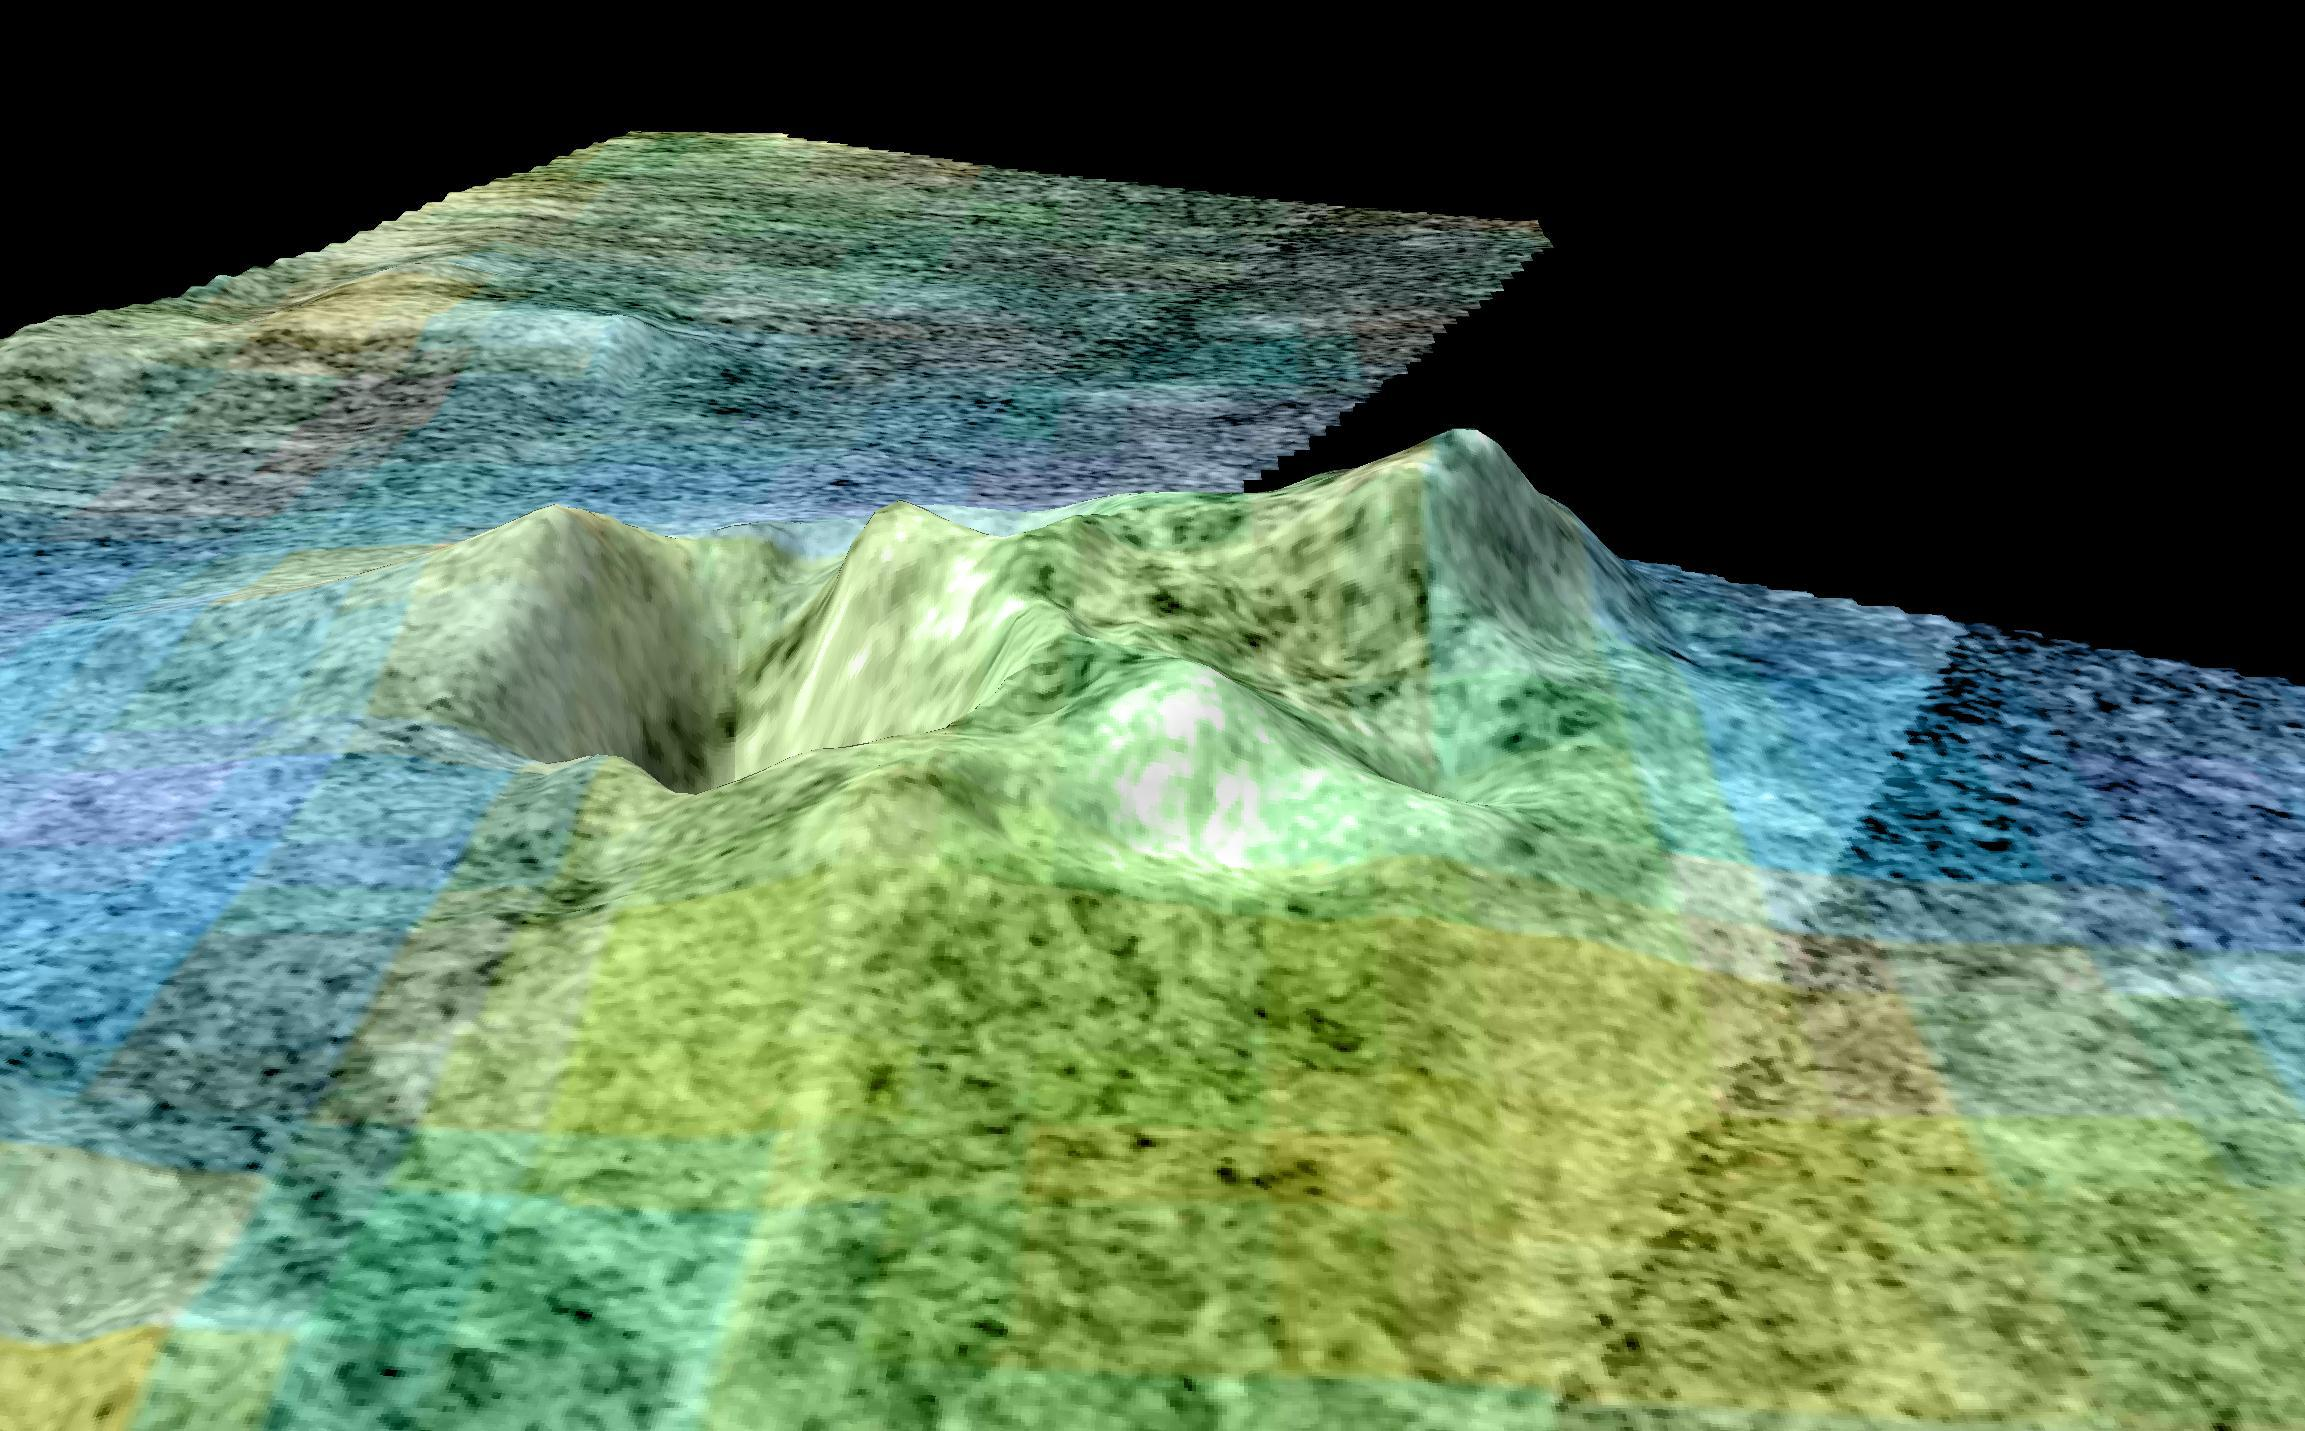 A false-color, 3D representation of radar data from Cassini showing a feature on Titan called Sotra Facula, which appears to be an inactive cryovolcano.